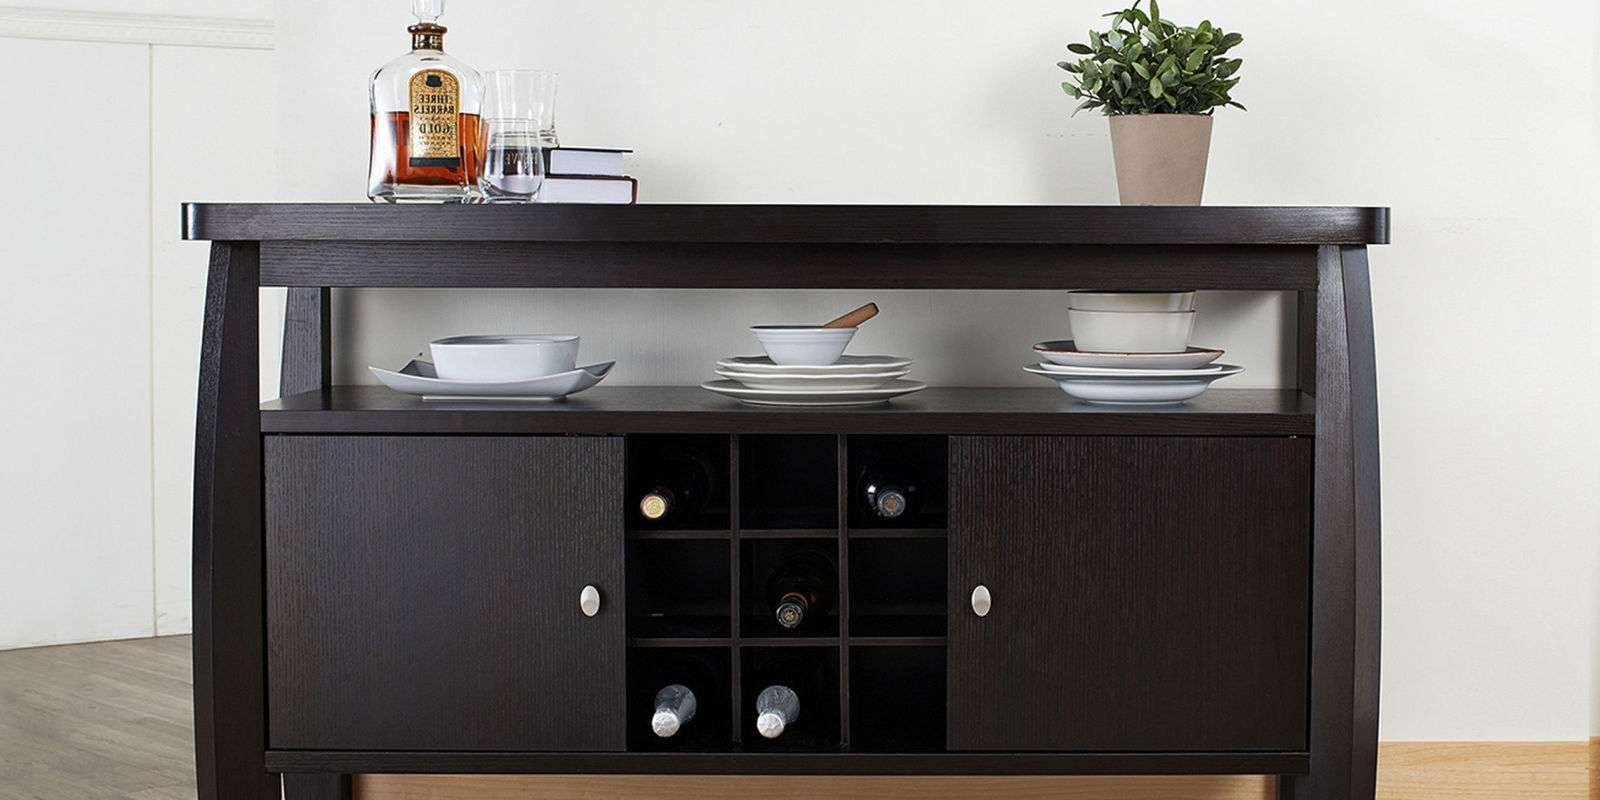 11 Best Sideboards And Buffets In 2018 – Reviews Of Sideboards Pertaining To Sideboards With Lights (Gallery 16 of 20)